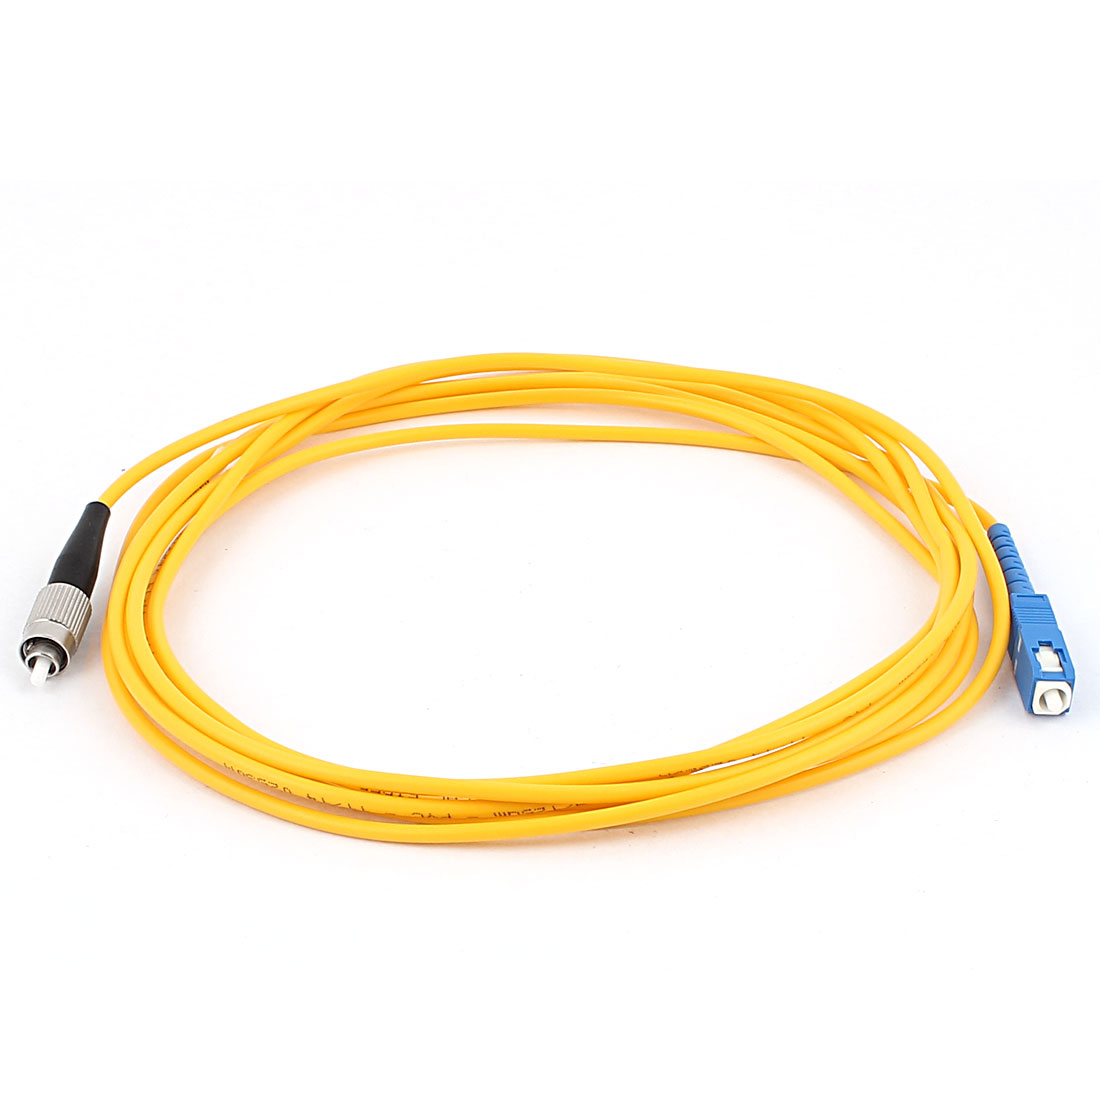 3.0M 9/125 Jumper Cable Simplex Singlemode FC-SC Optical Fiber Cord